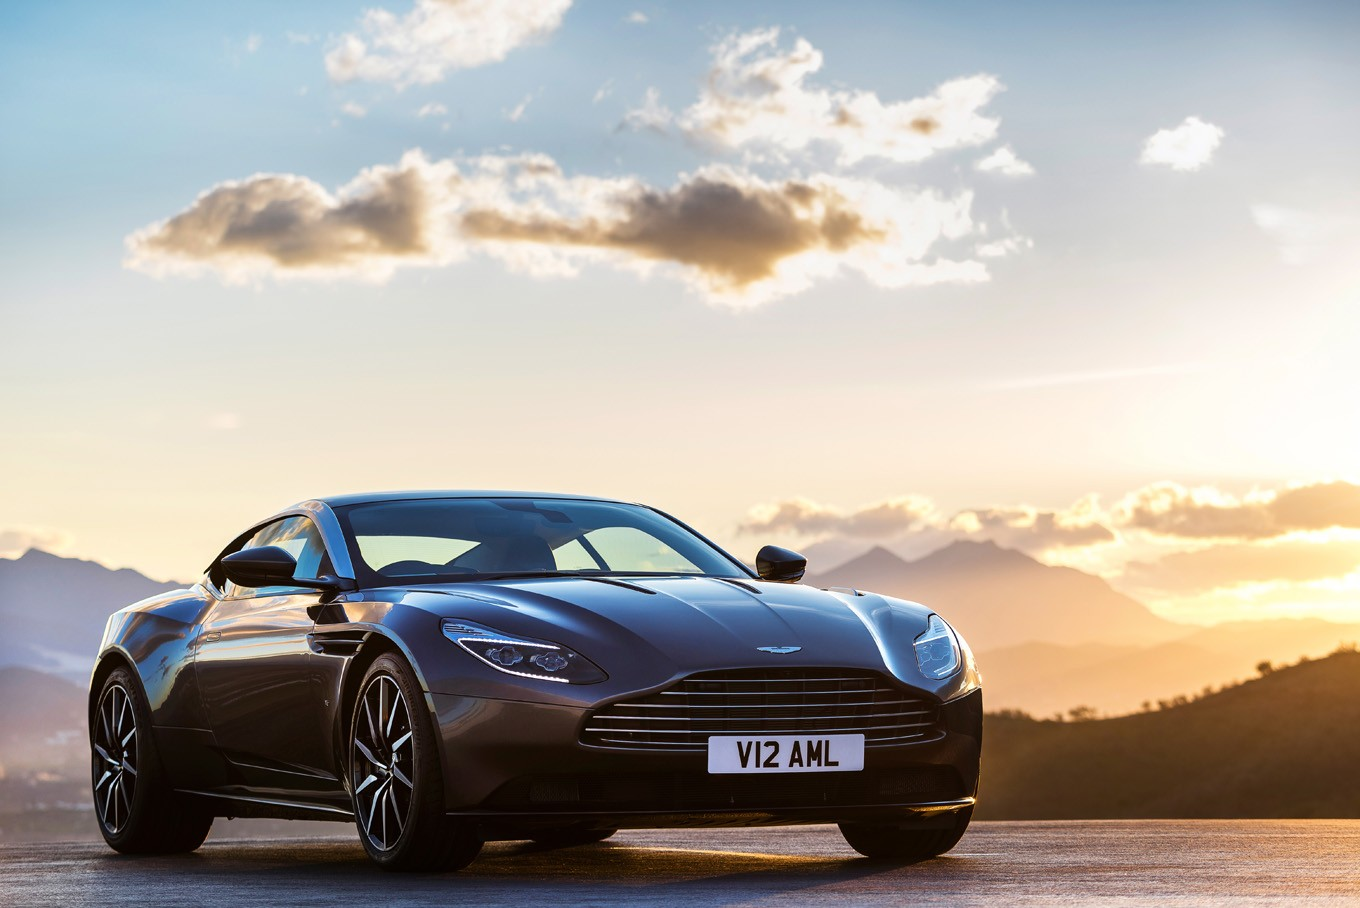 aston martin introduces owners club in indonesia - lifestyle - the